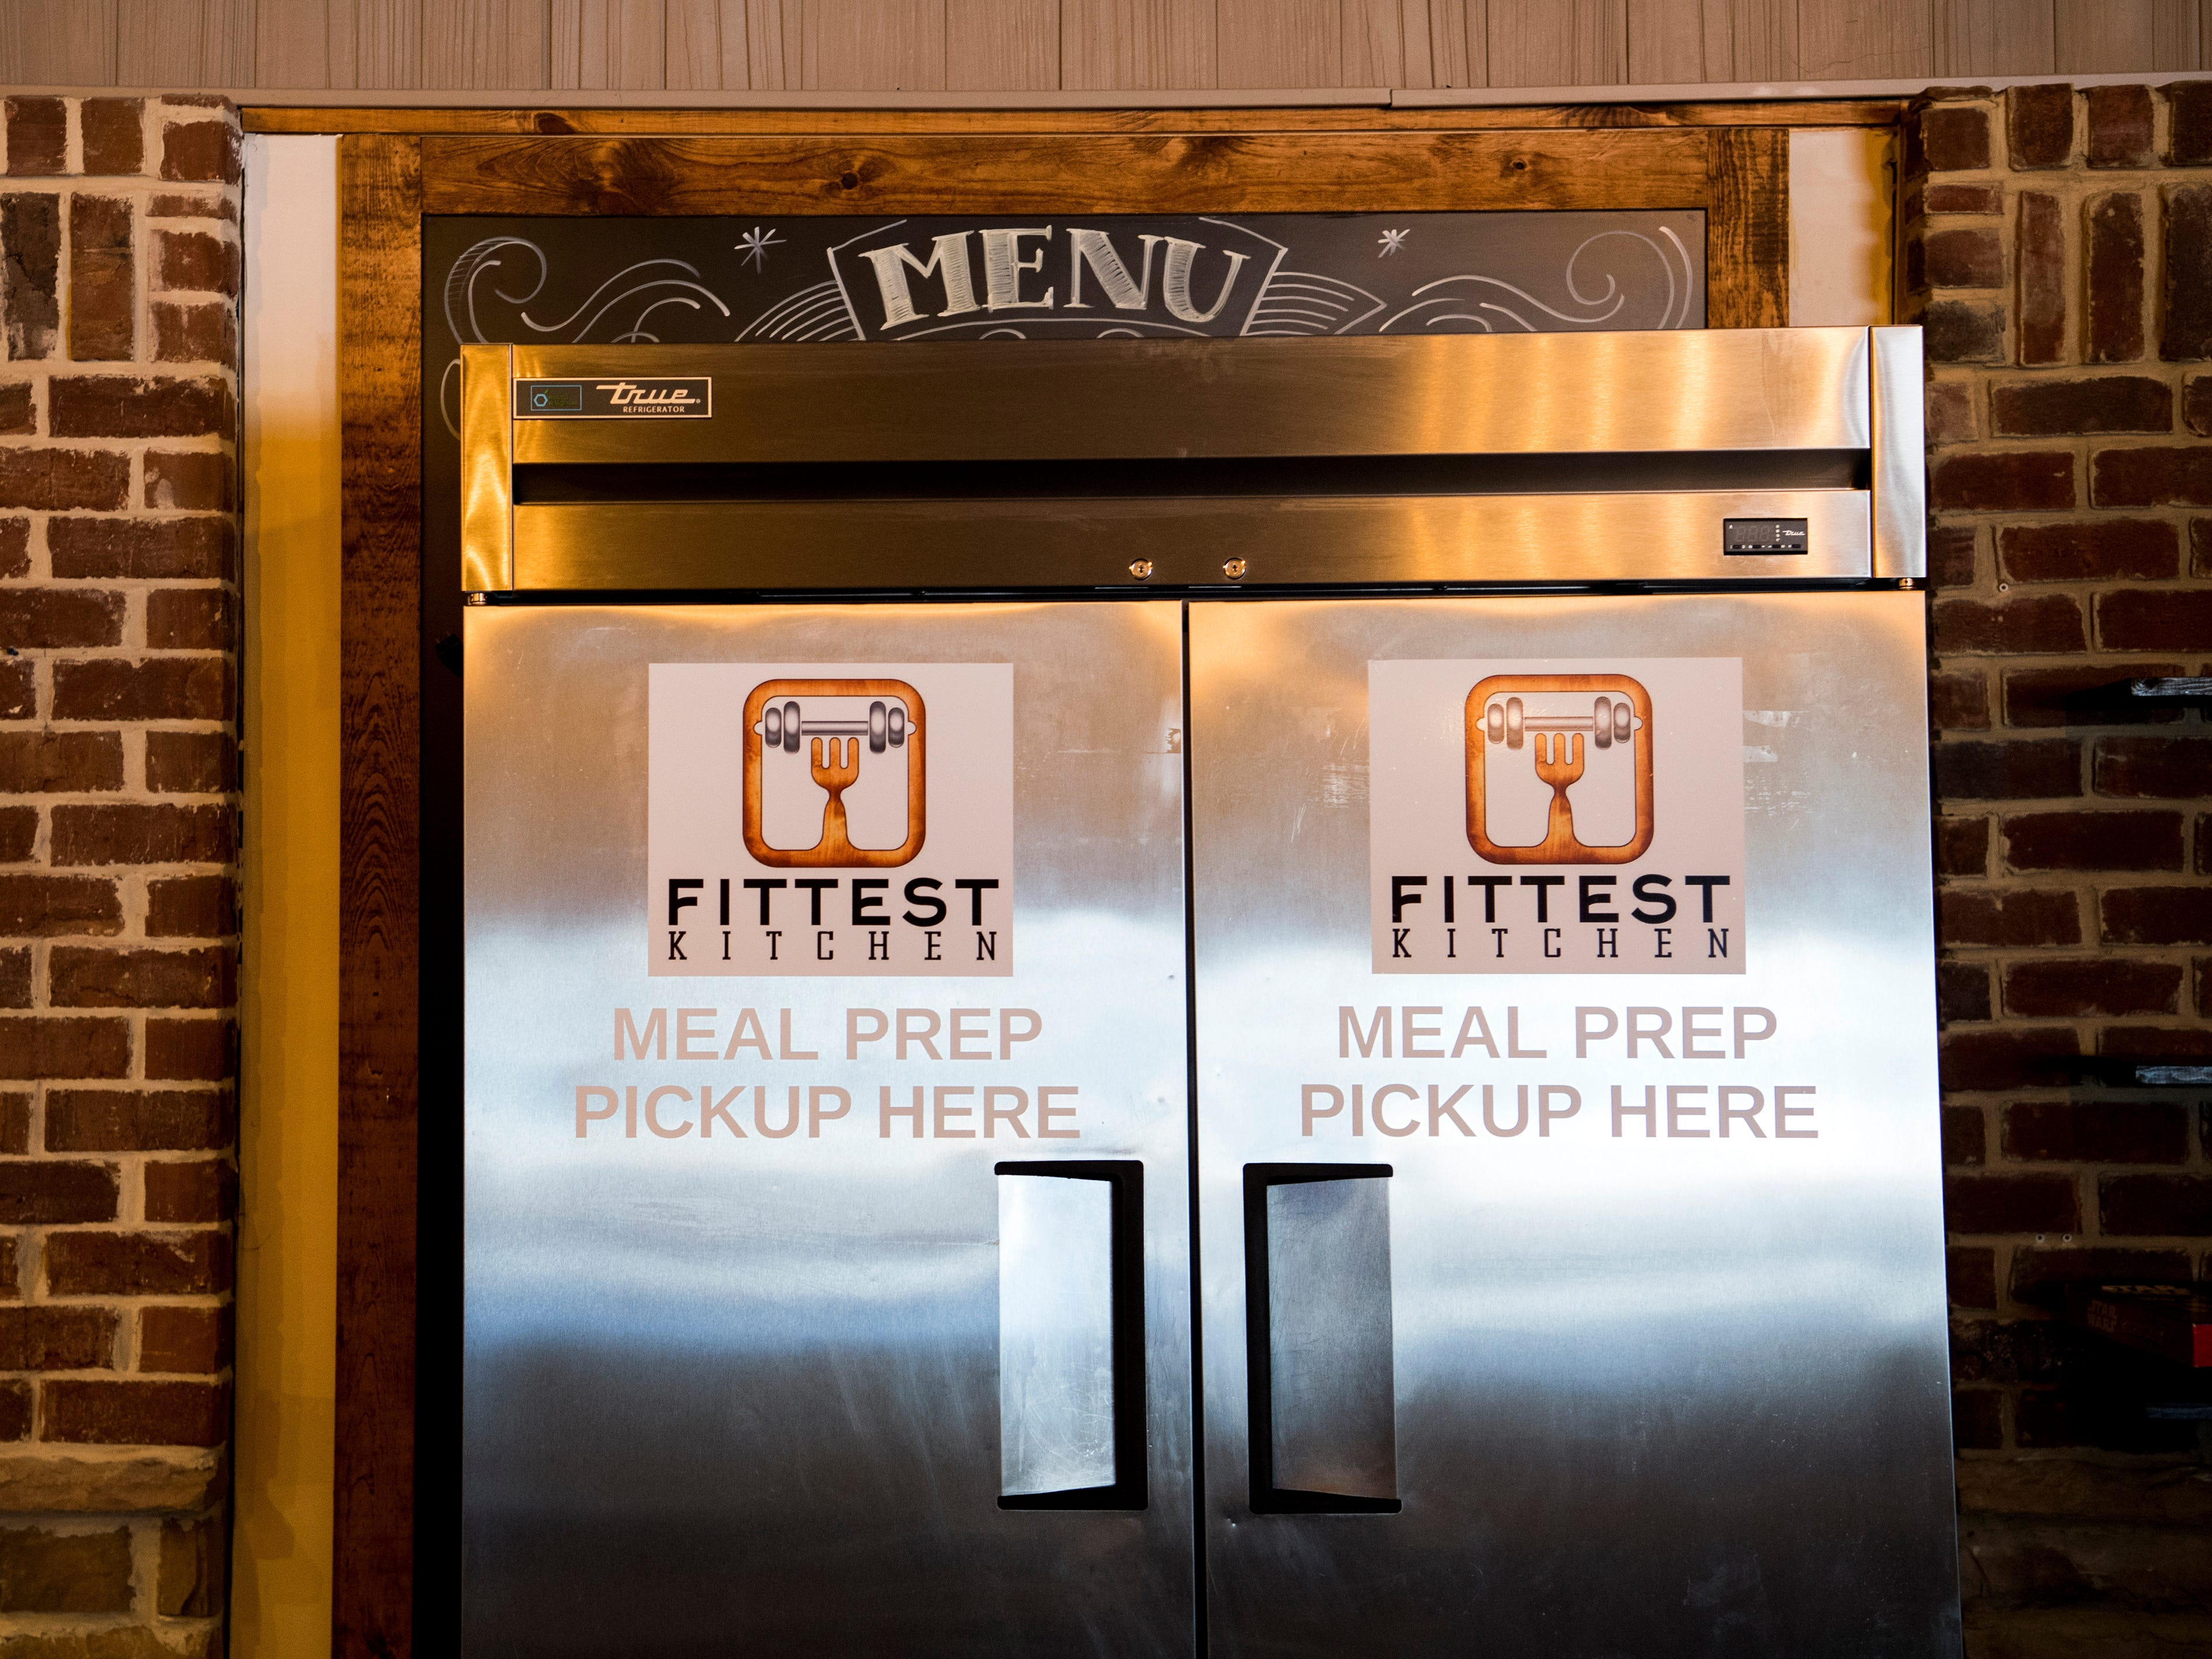 The meal prep pickup area at Fittest Kitchen, a meal prepping service housed at The Health Factory located on Alcoa Highway in Knoxville.